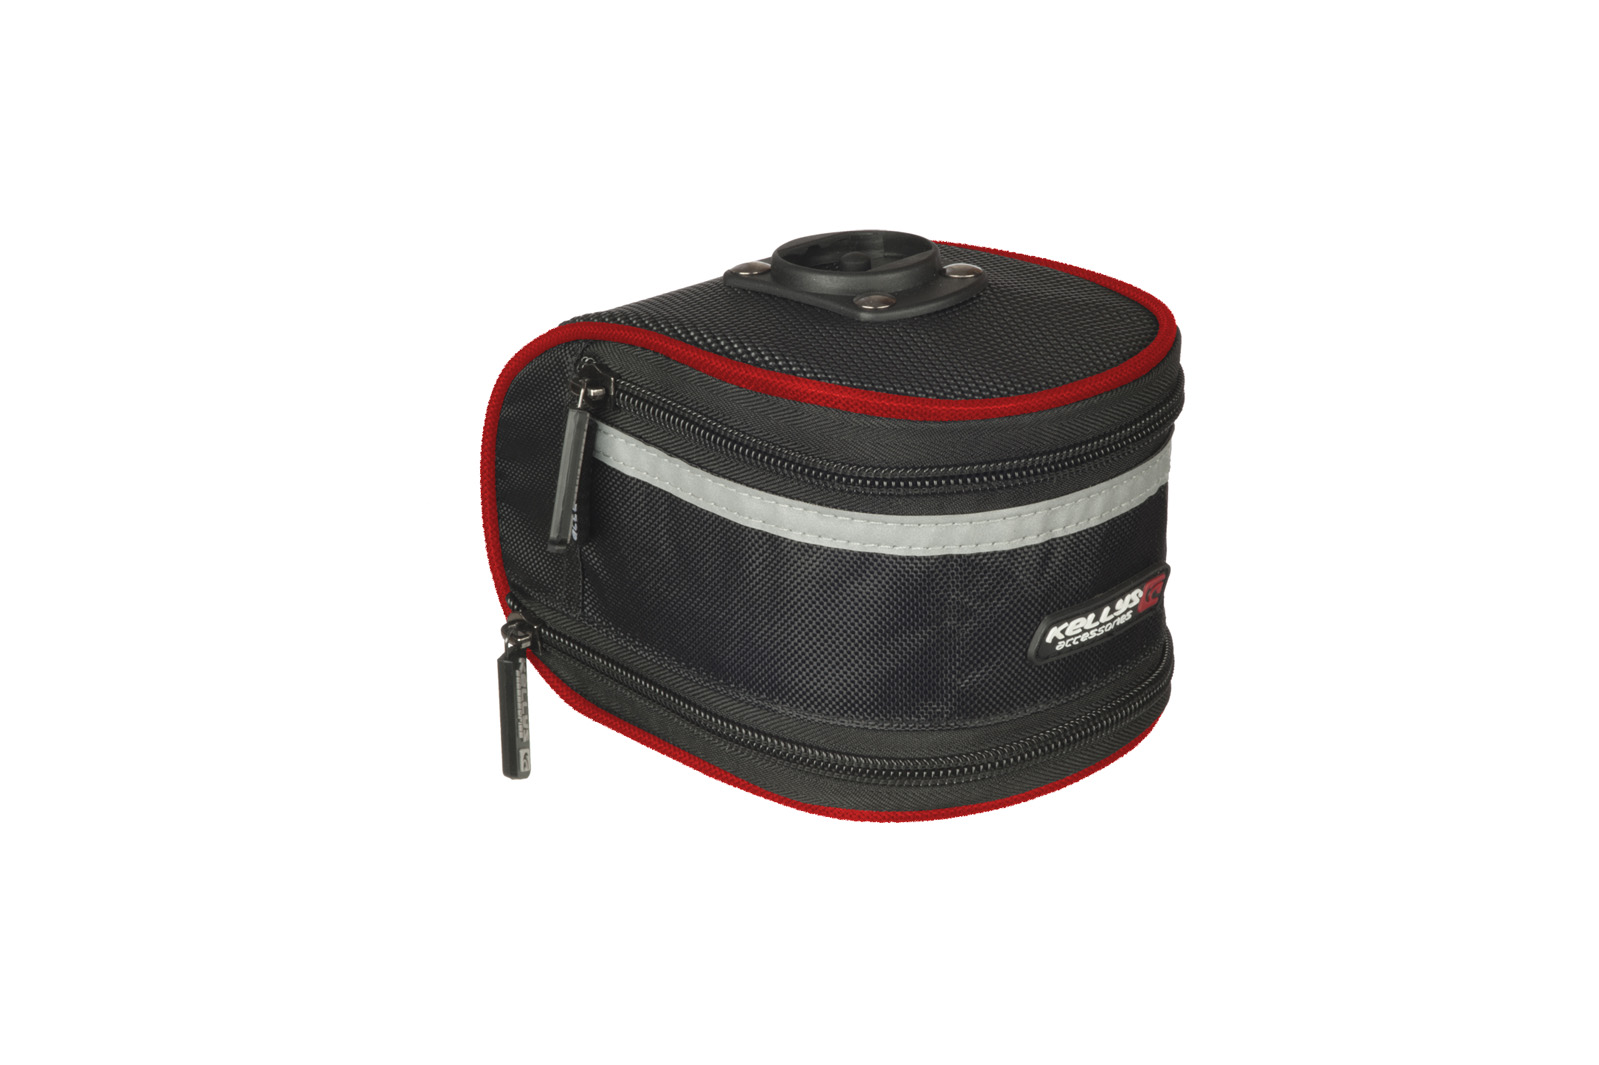 Satteltasche KELLYS HANDY black-red L - Mile-Multisport